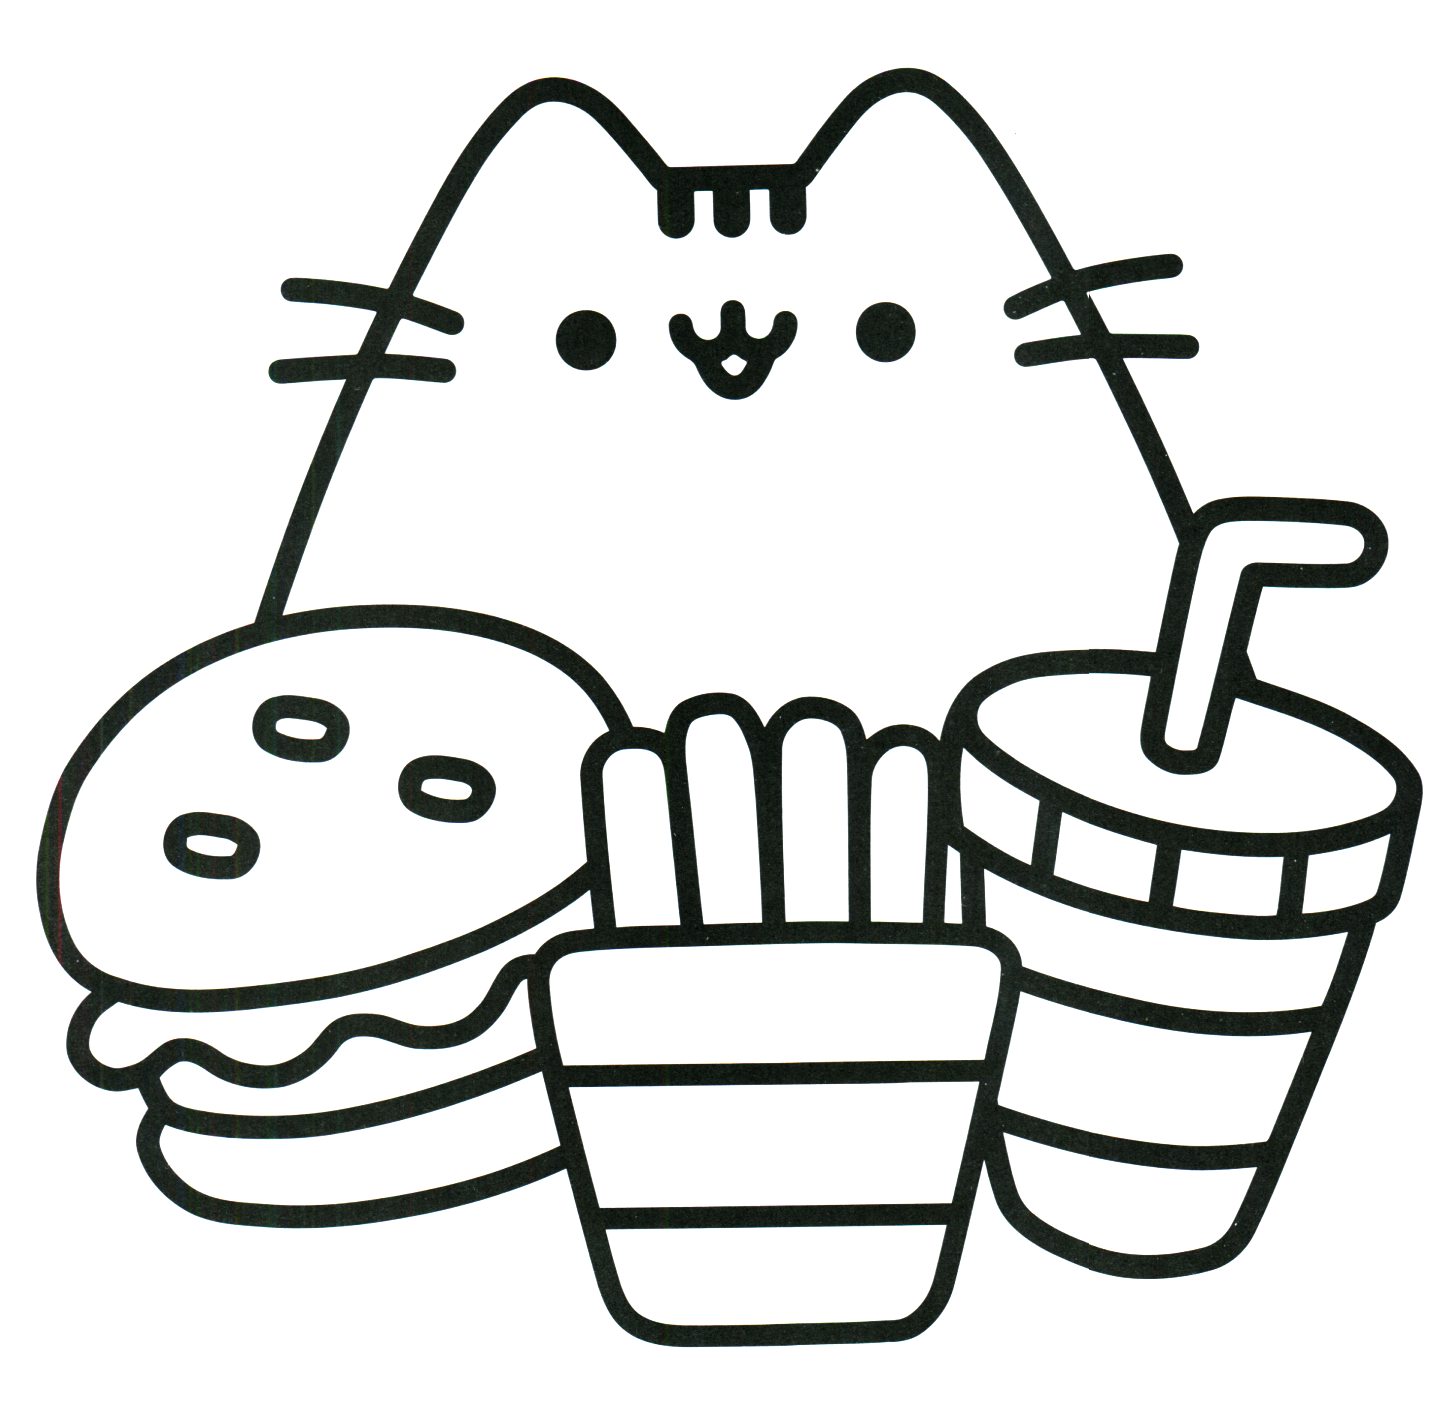 Cute Coloring Pages Adorable Pusheen Coloring Book Pusheen Pusheen The Cat  Pusheen Coloring .